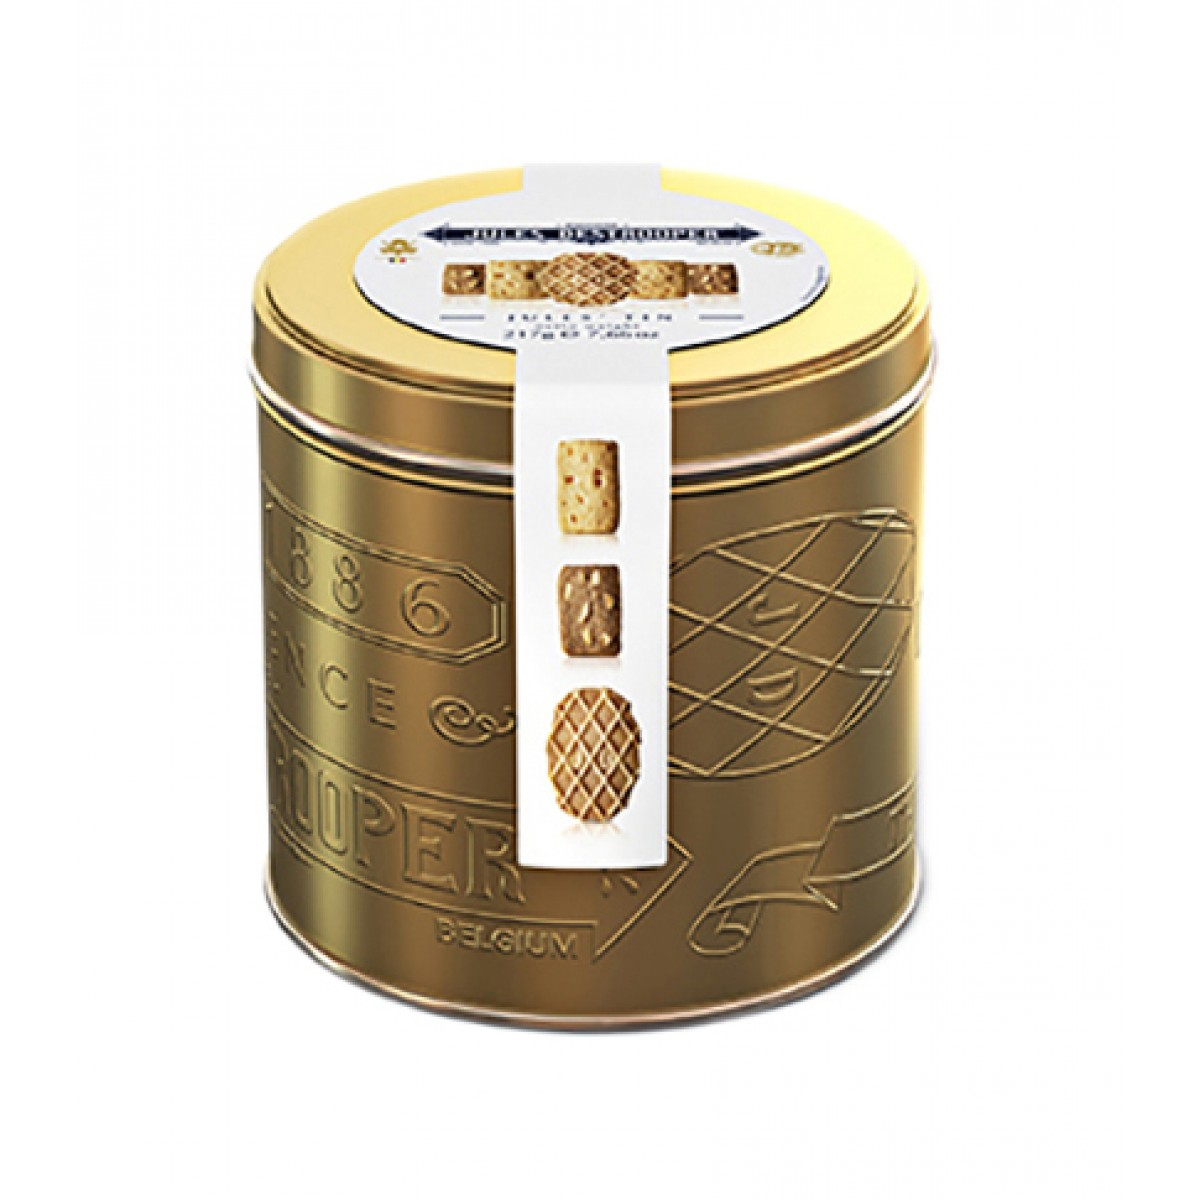 Surtido Jules Destrooper Gold Tin